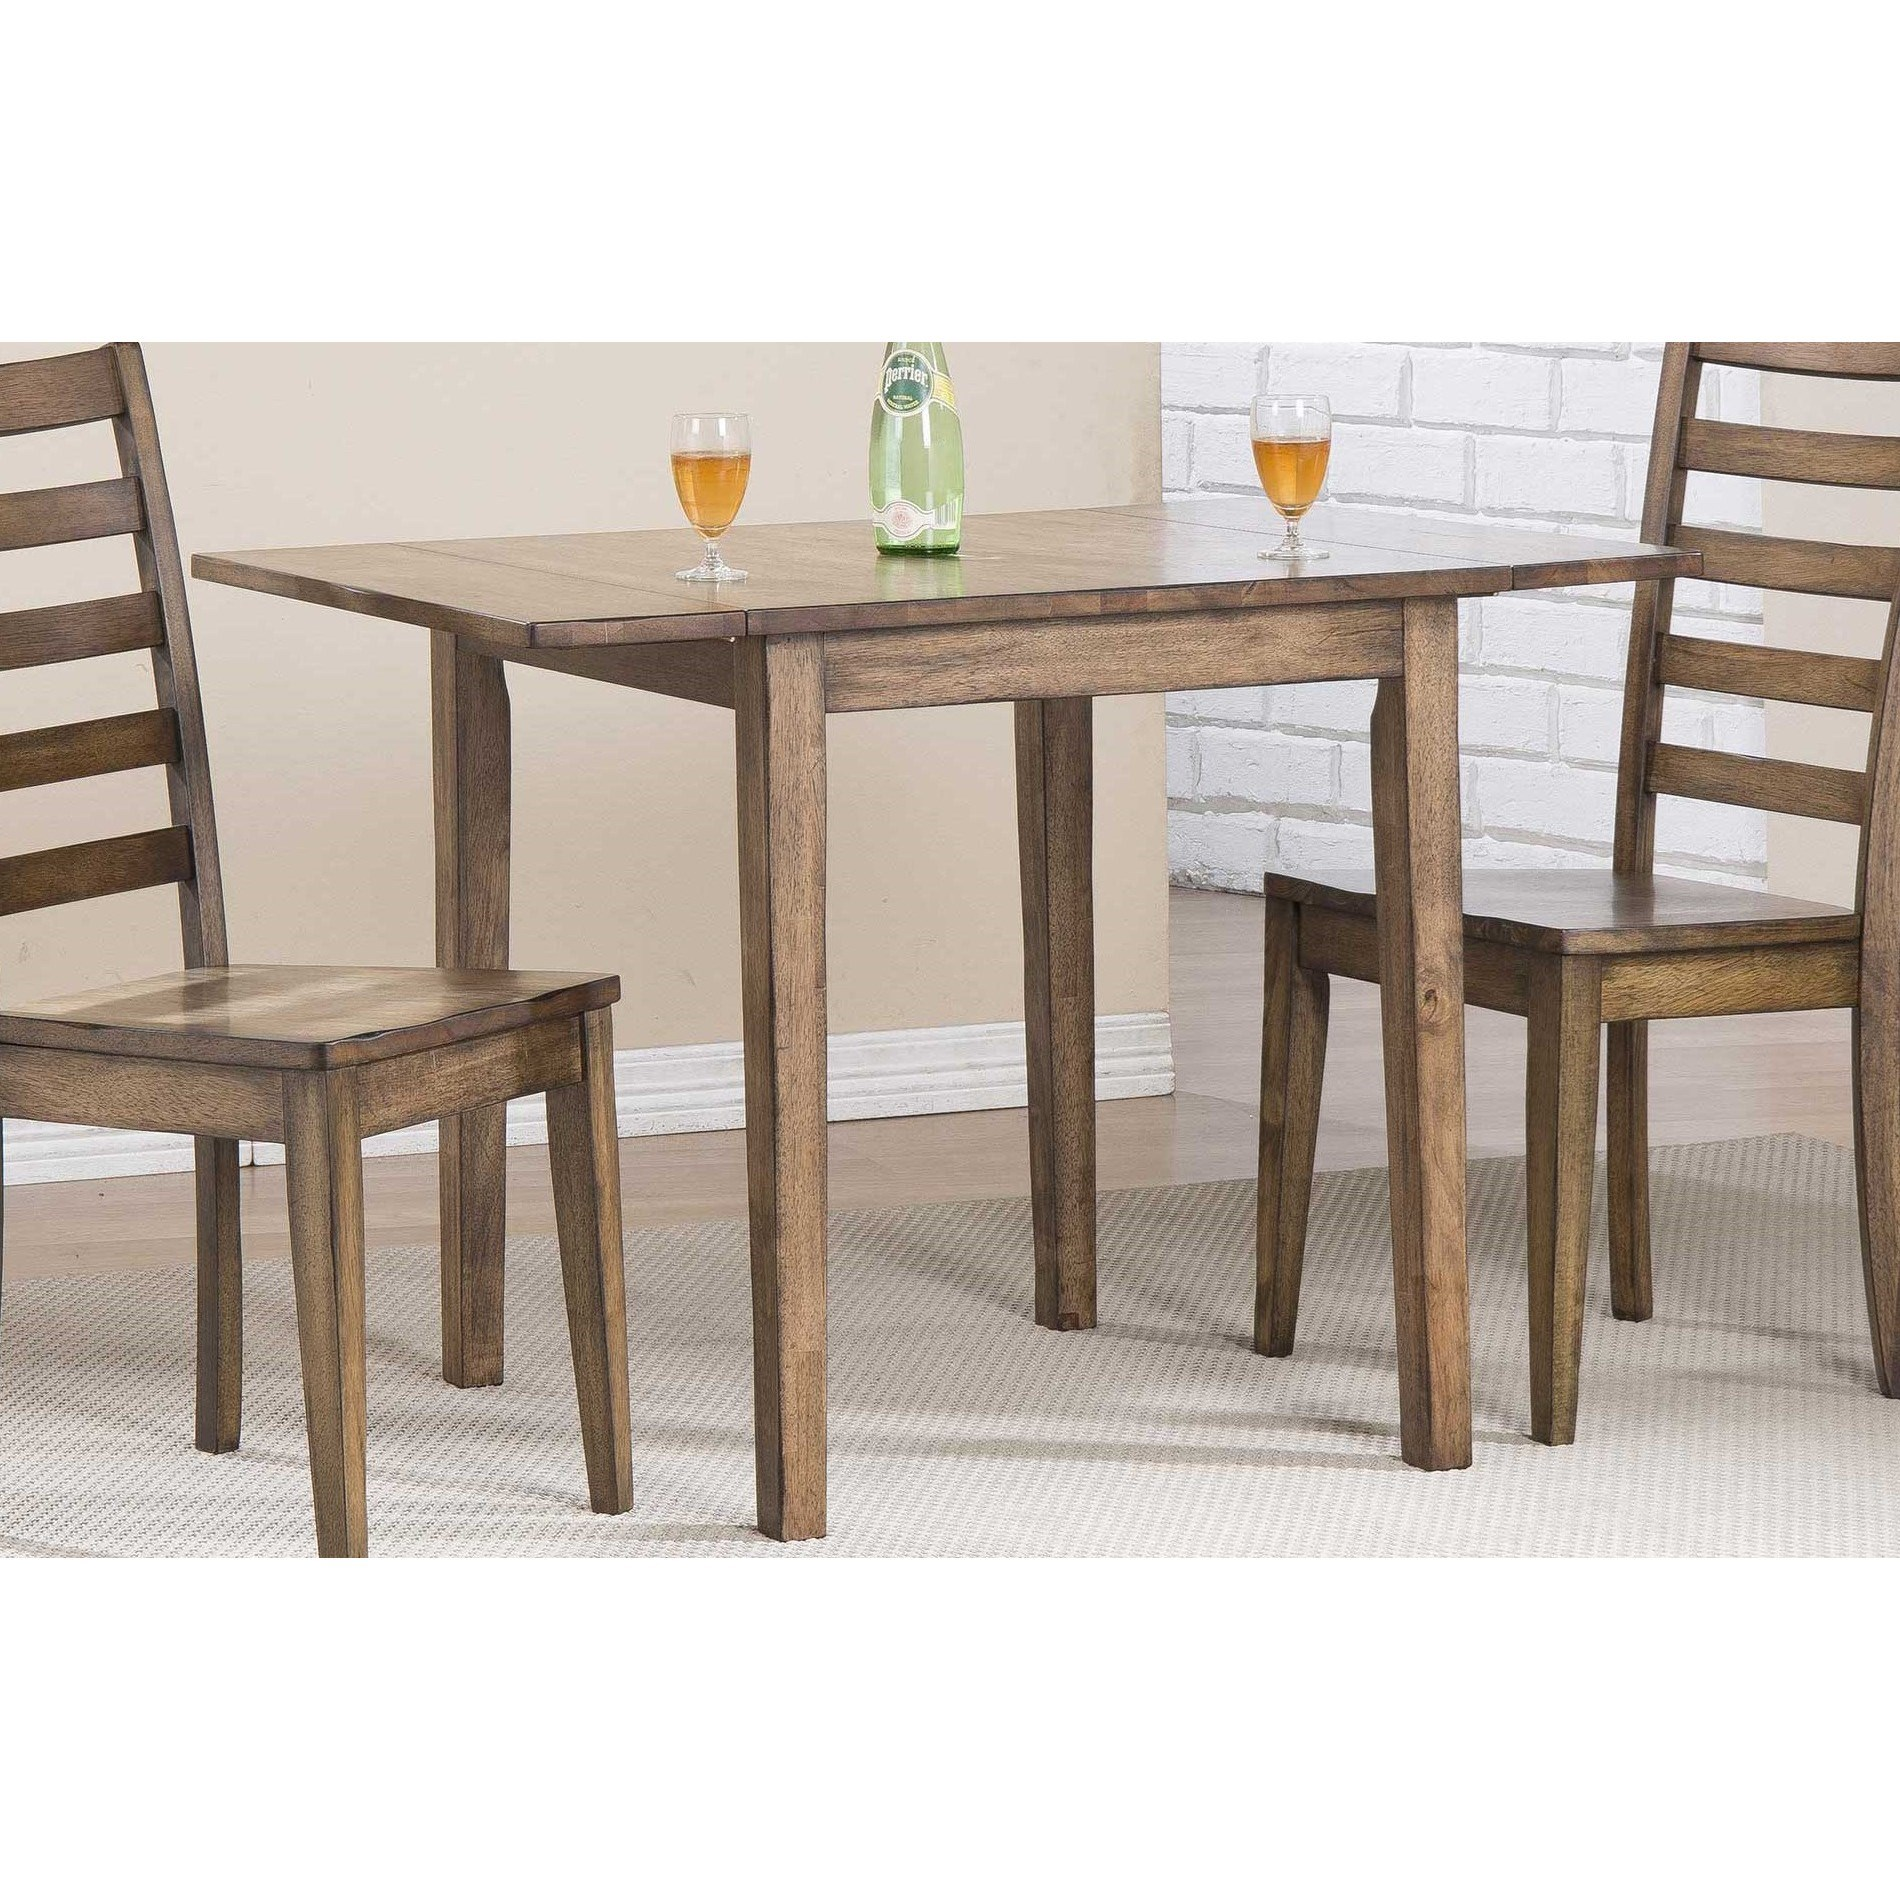 Carmel Dropleaf Dining Table by Winners Only at Crowley Furniture & Mattress